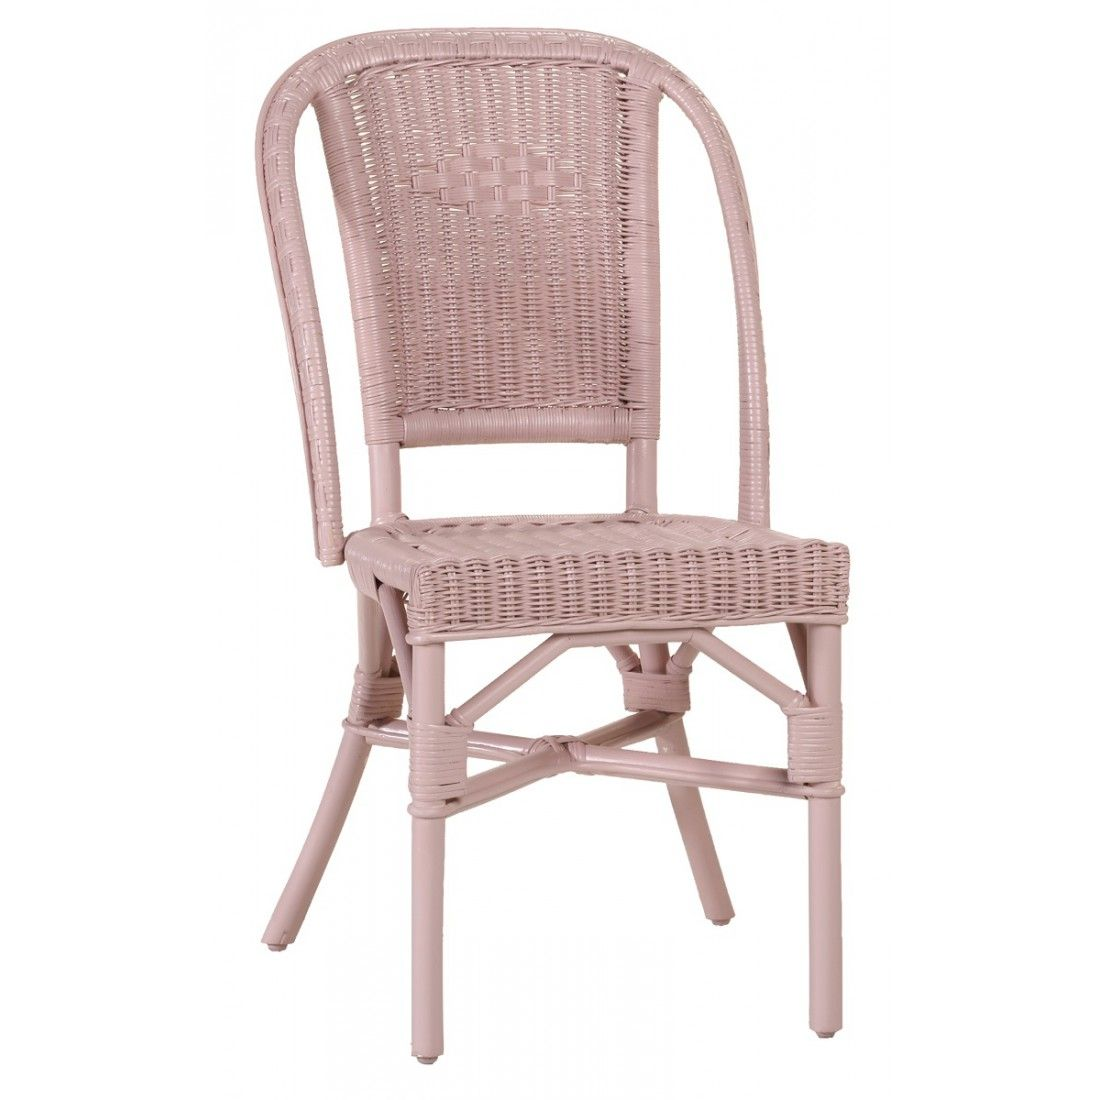 Chaise rotin rose bonbon albertine chaise en rotin kok for Chaise rotin tresse